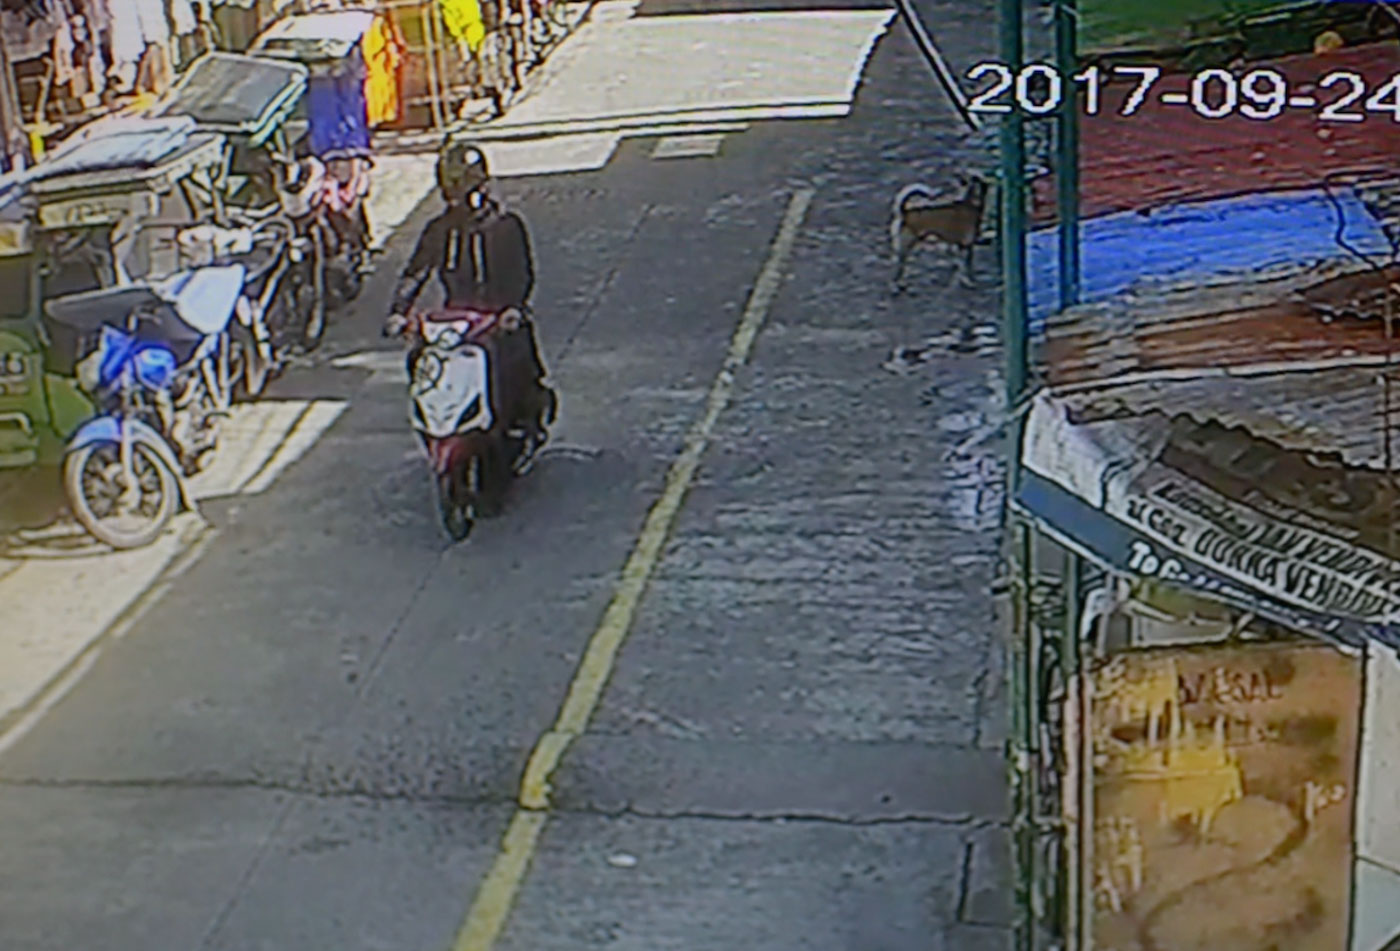 THE GUNMAN. This is the person who kept on shooting at the innocent Jayross even after an uncle shouted he was making a mistake. Neighbors believe the assassin was after Gary Alandra, a 30-something neighbor who is on the barangay drug watch list. Screen grab from the CCTV of Barangay 103, Pasay City